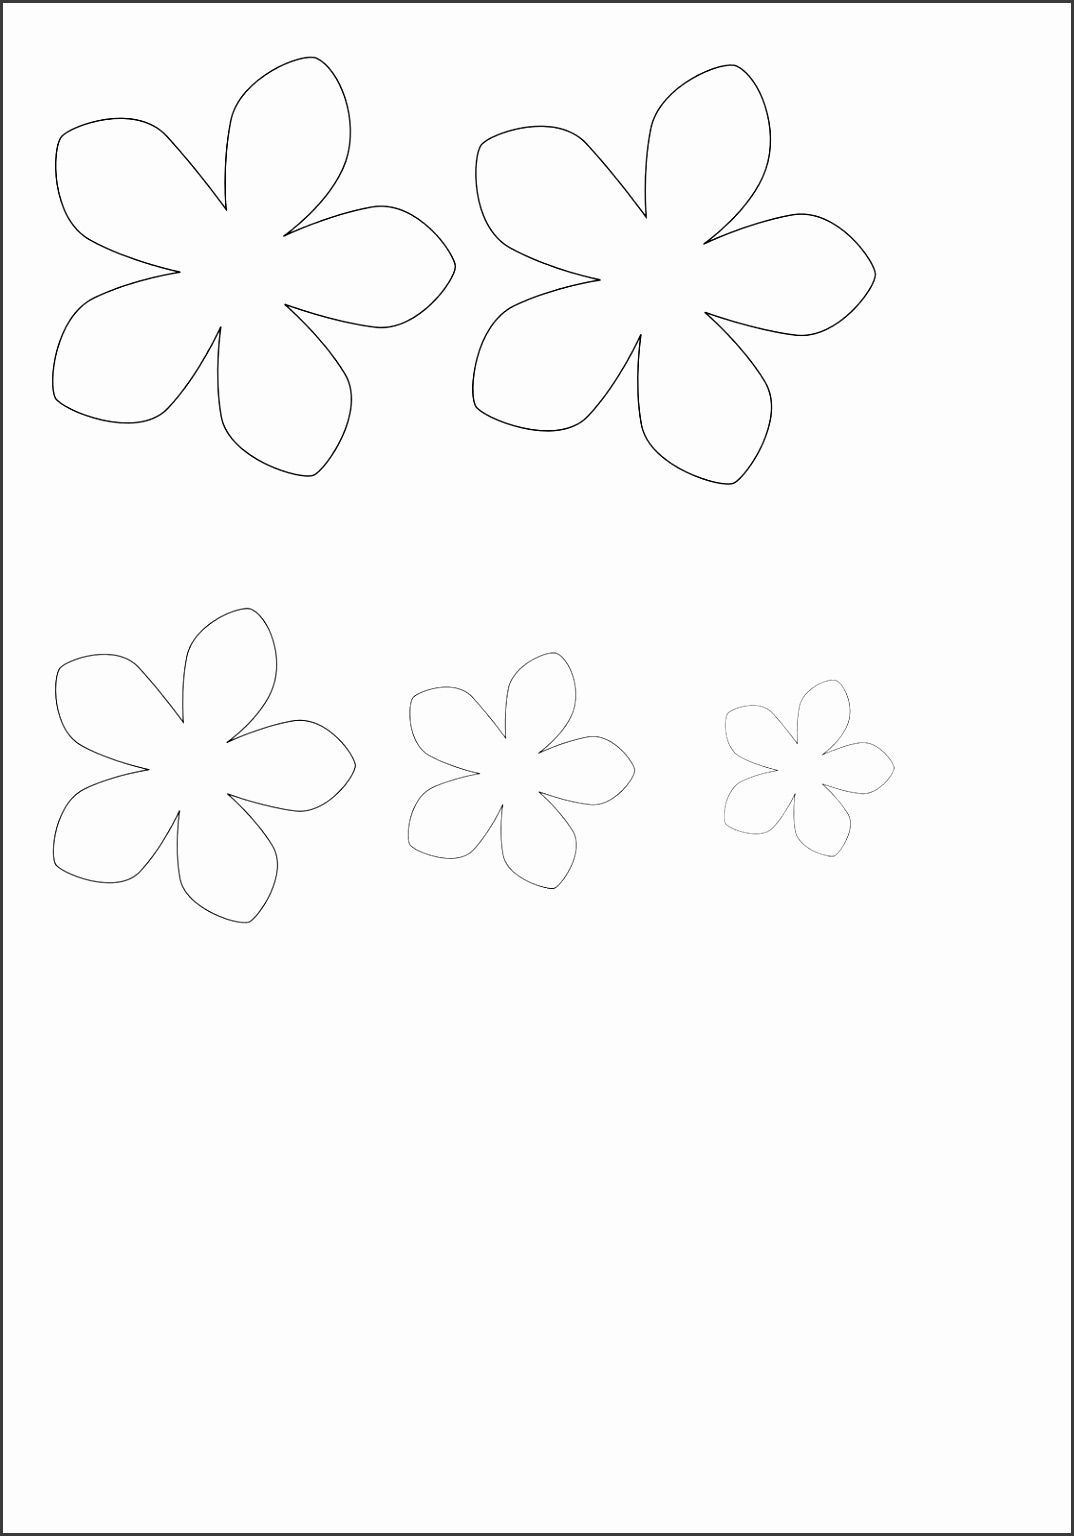 Flowers For Sunflower Petal Template Printable Coloring Pages Free Place Cards Birthday Full Size